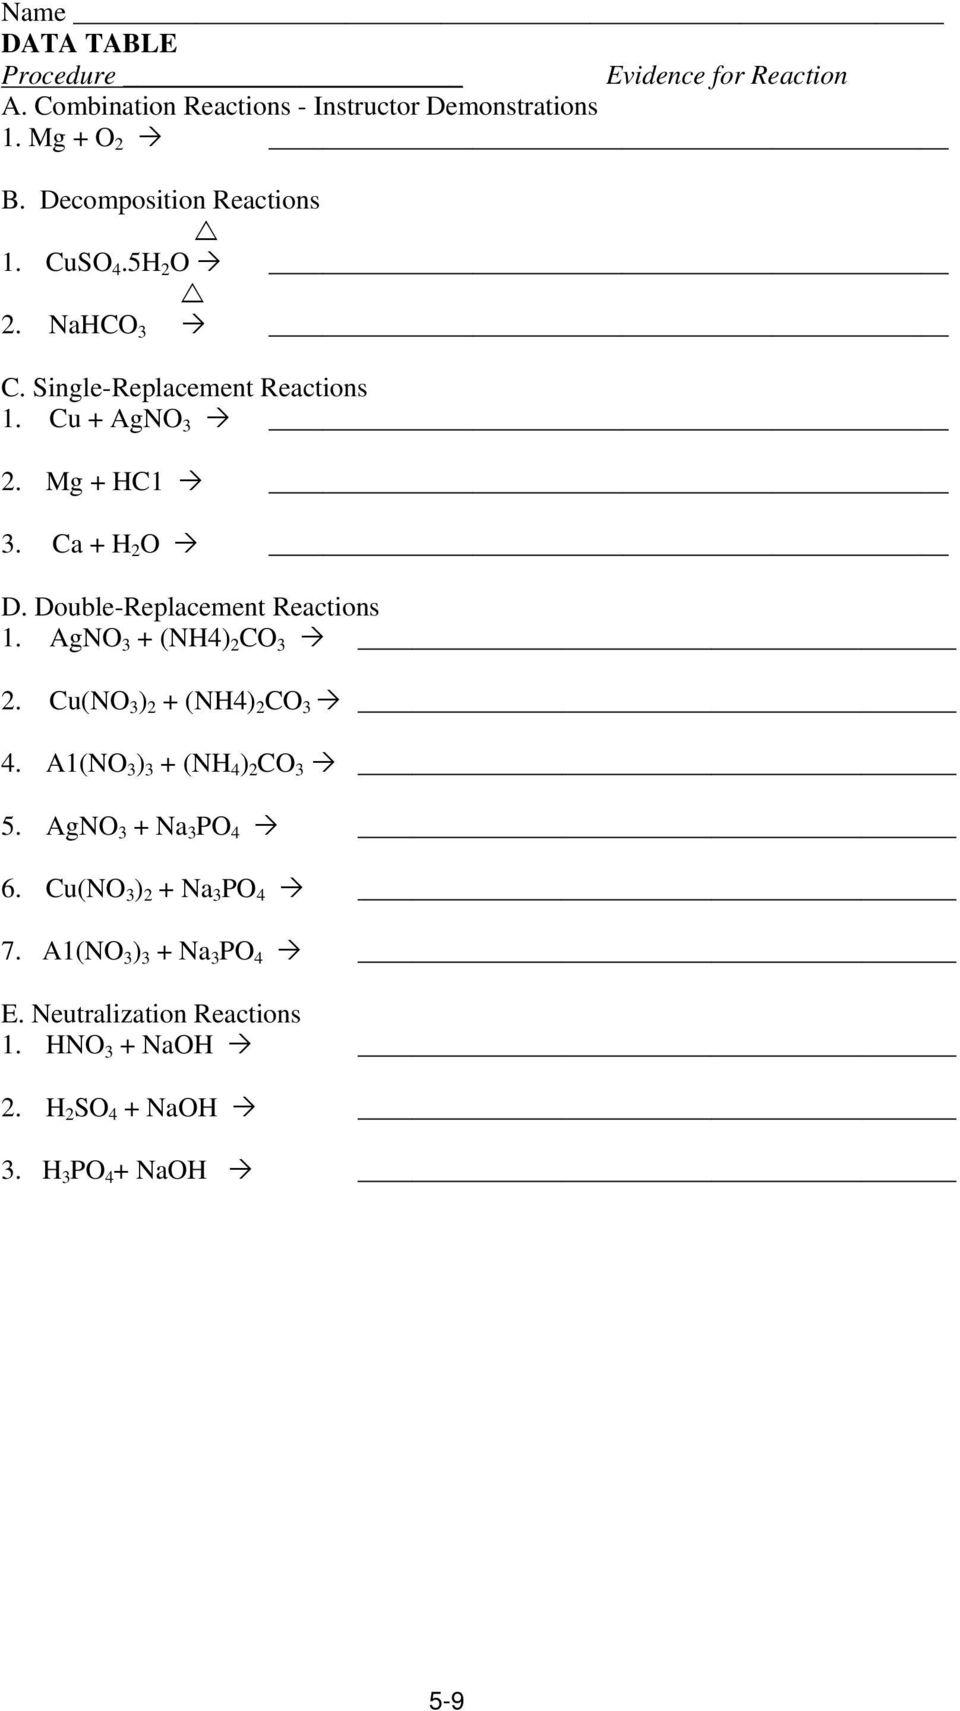 Double-Replacement Reactions 1. AgNO 3 + (NH4) 2 CO 3 2. Cu(NO 3 ) 2 + (NH4) 2 CO 3 4. A1(NO 3 ) 3 + (NH 4 ) 2 CO 3 5.